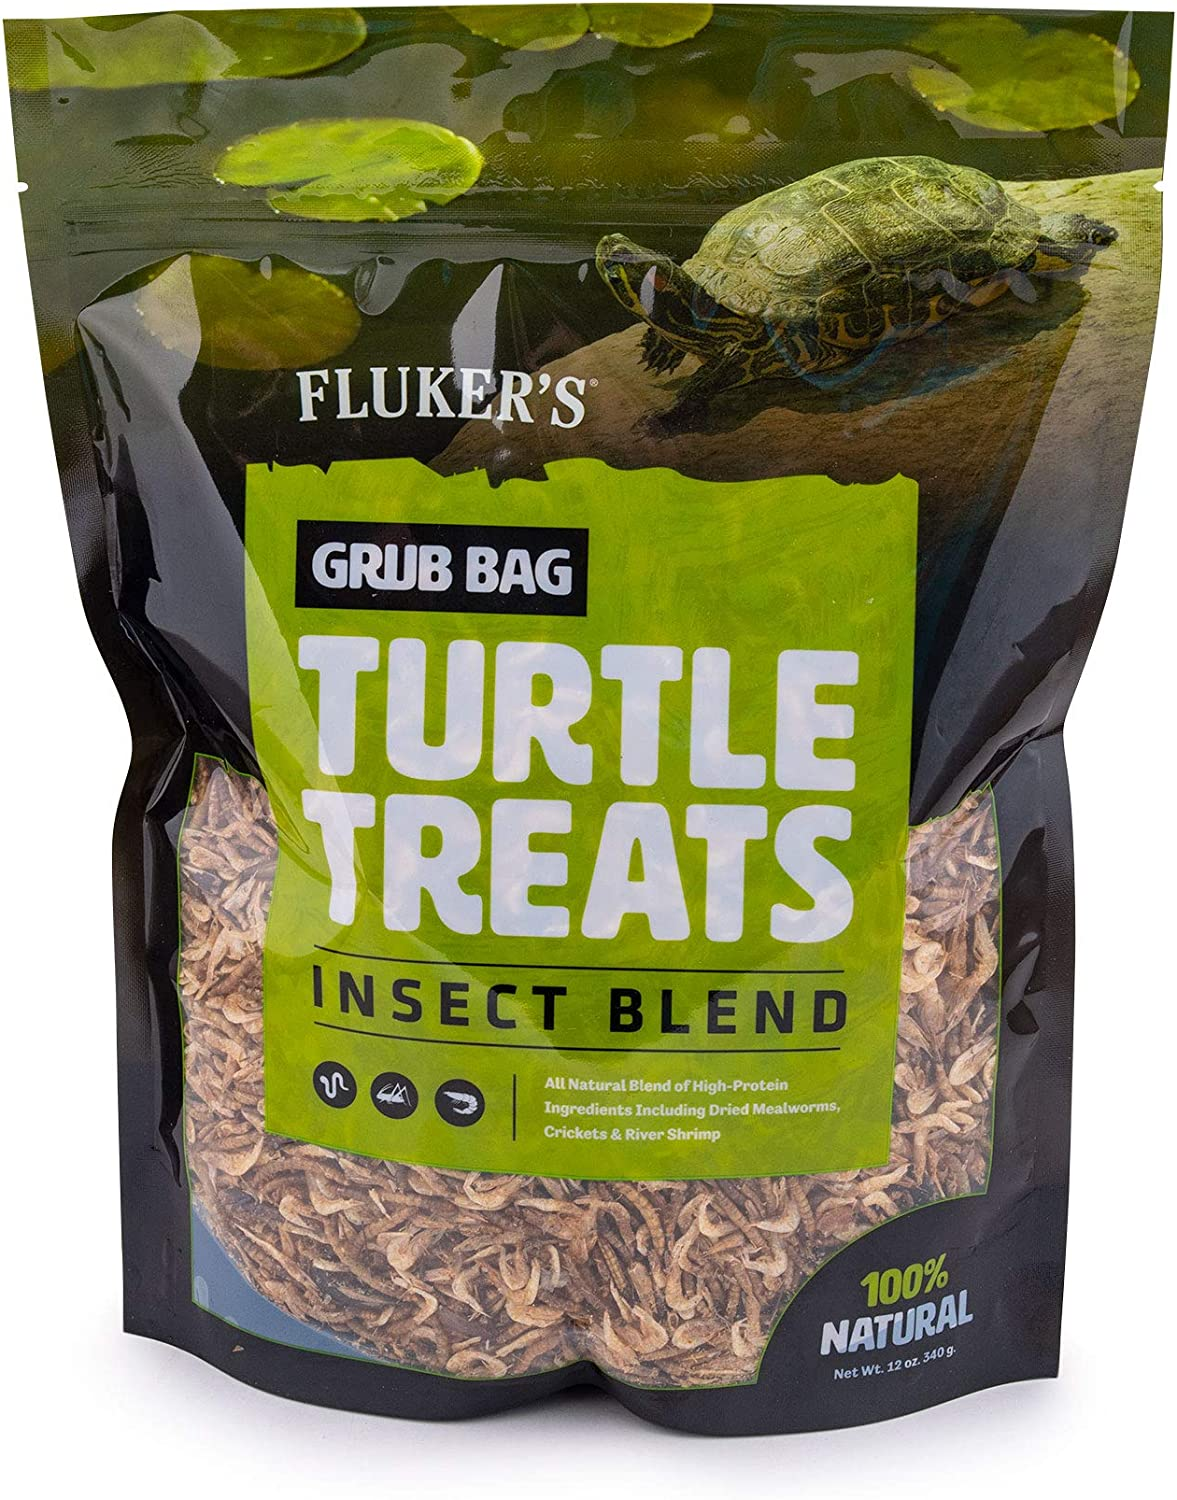 Fluker's Grub Bag Turtle Treat